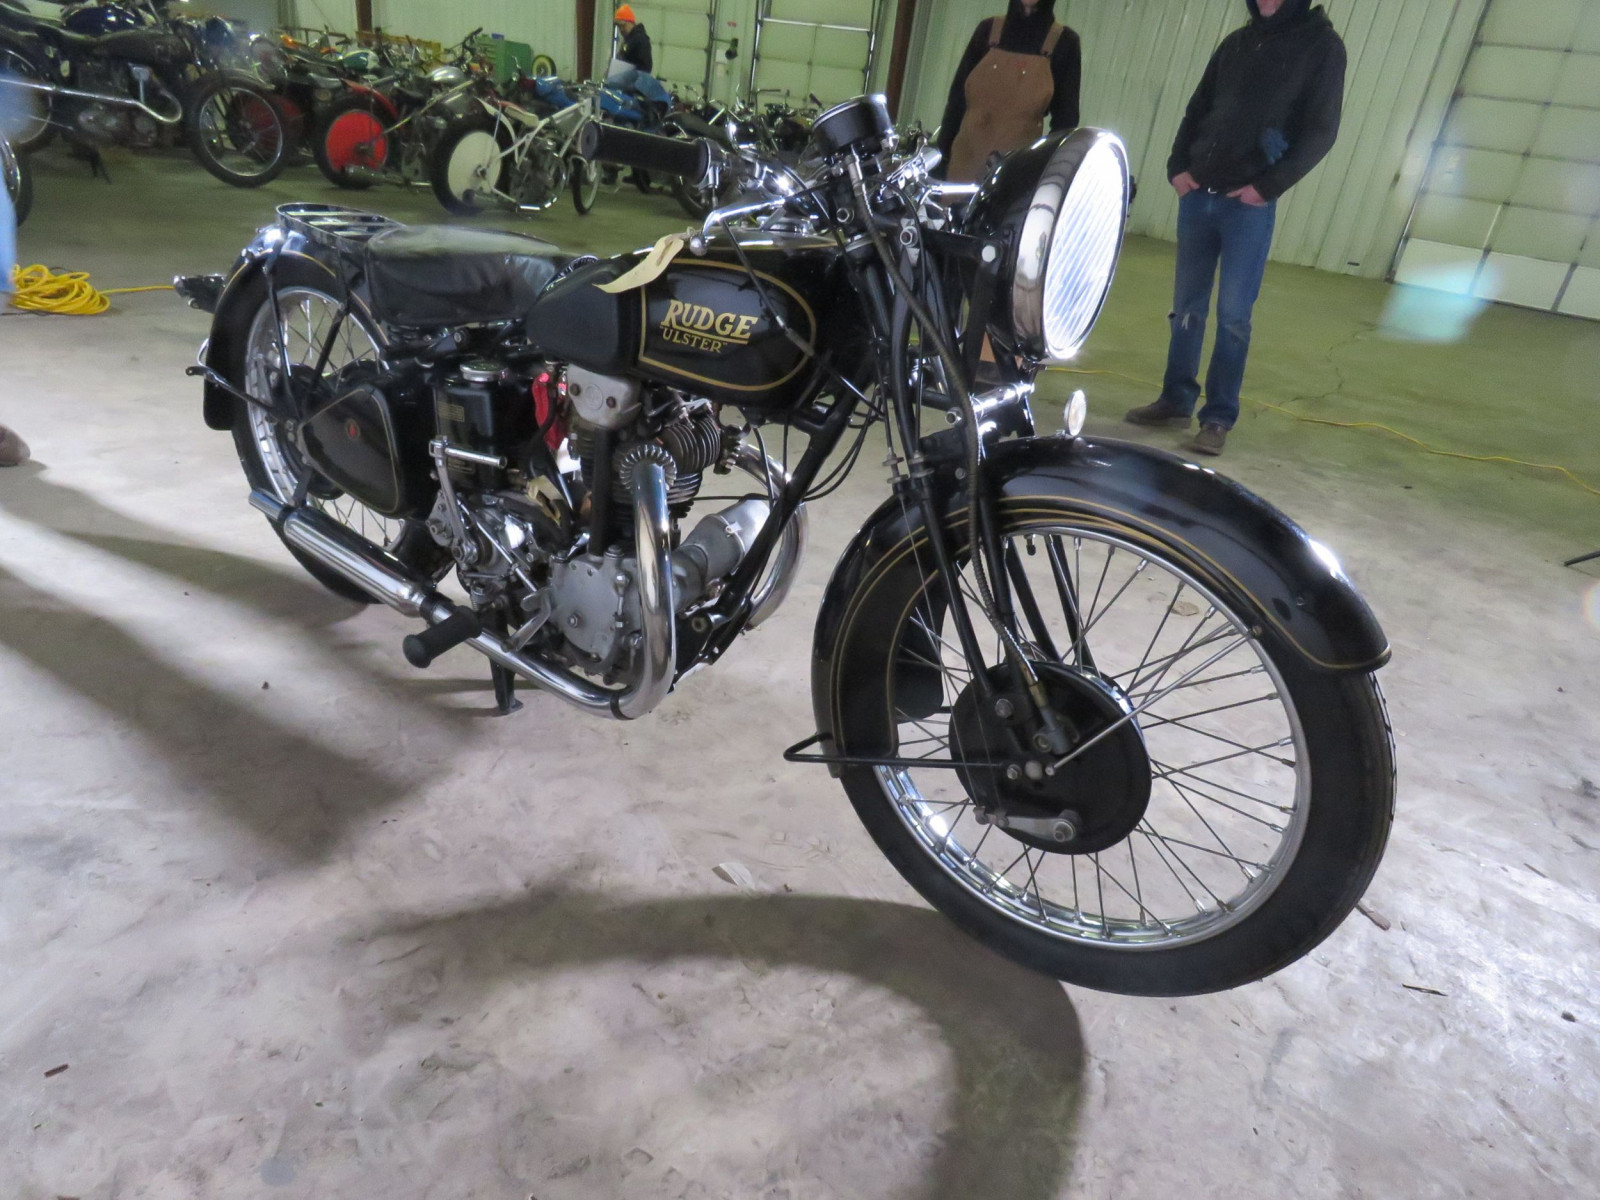 1939 Rudge Ulster Prewar Road Race Motorcycle - Image 2